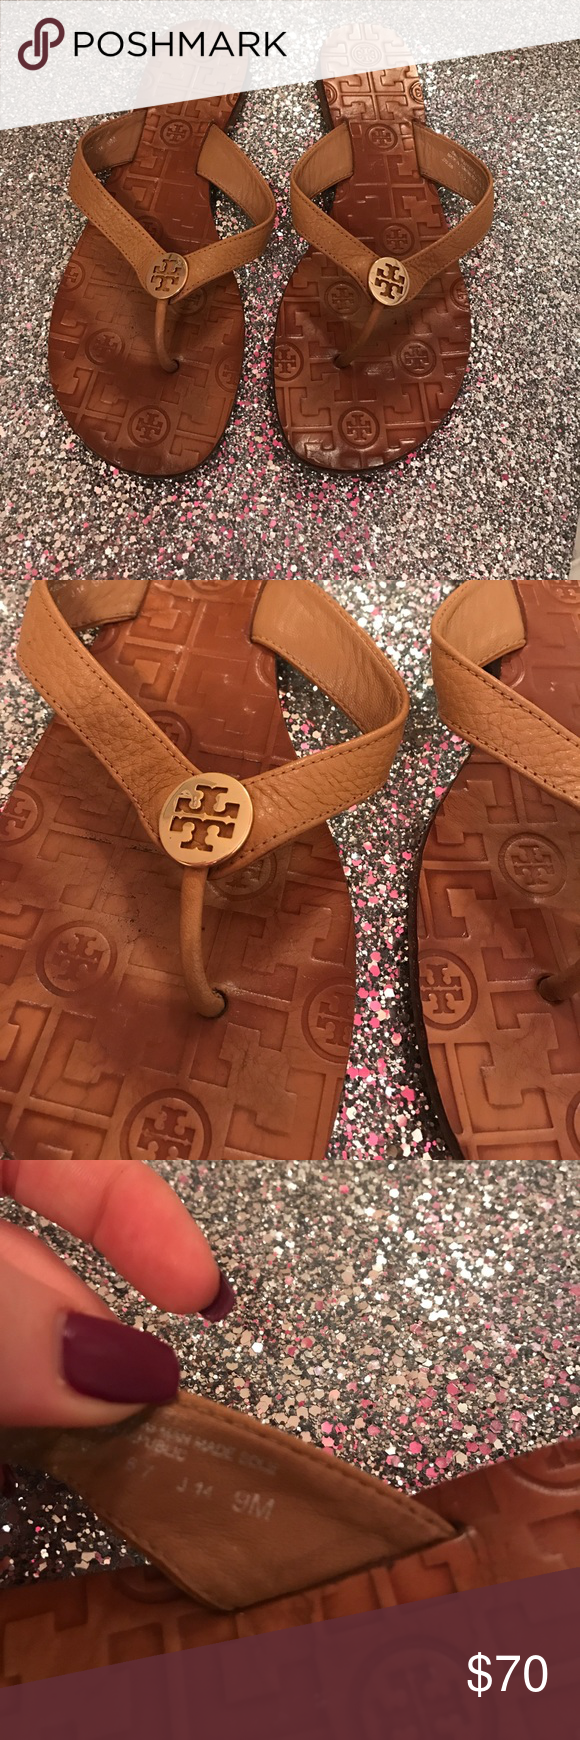 Tory burch Thora flip flop Used condition but still lots of wear to be had! Tory Burch Shoes Sandals